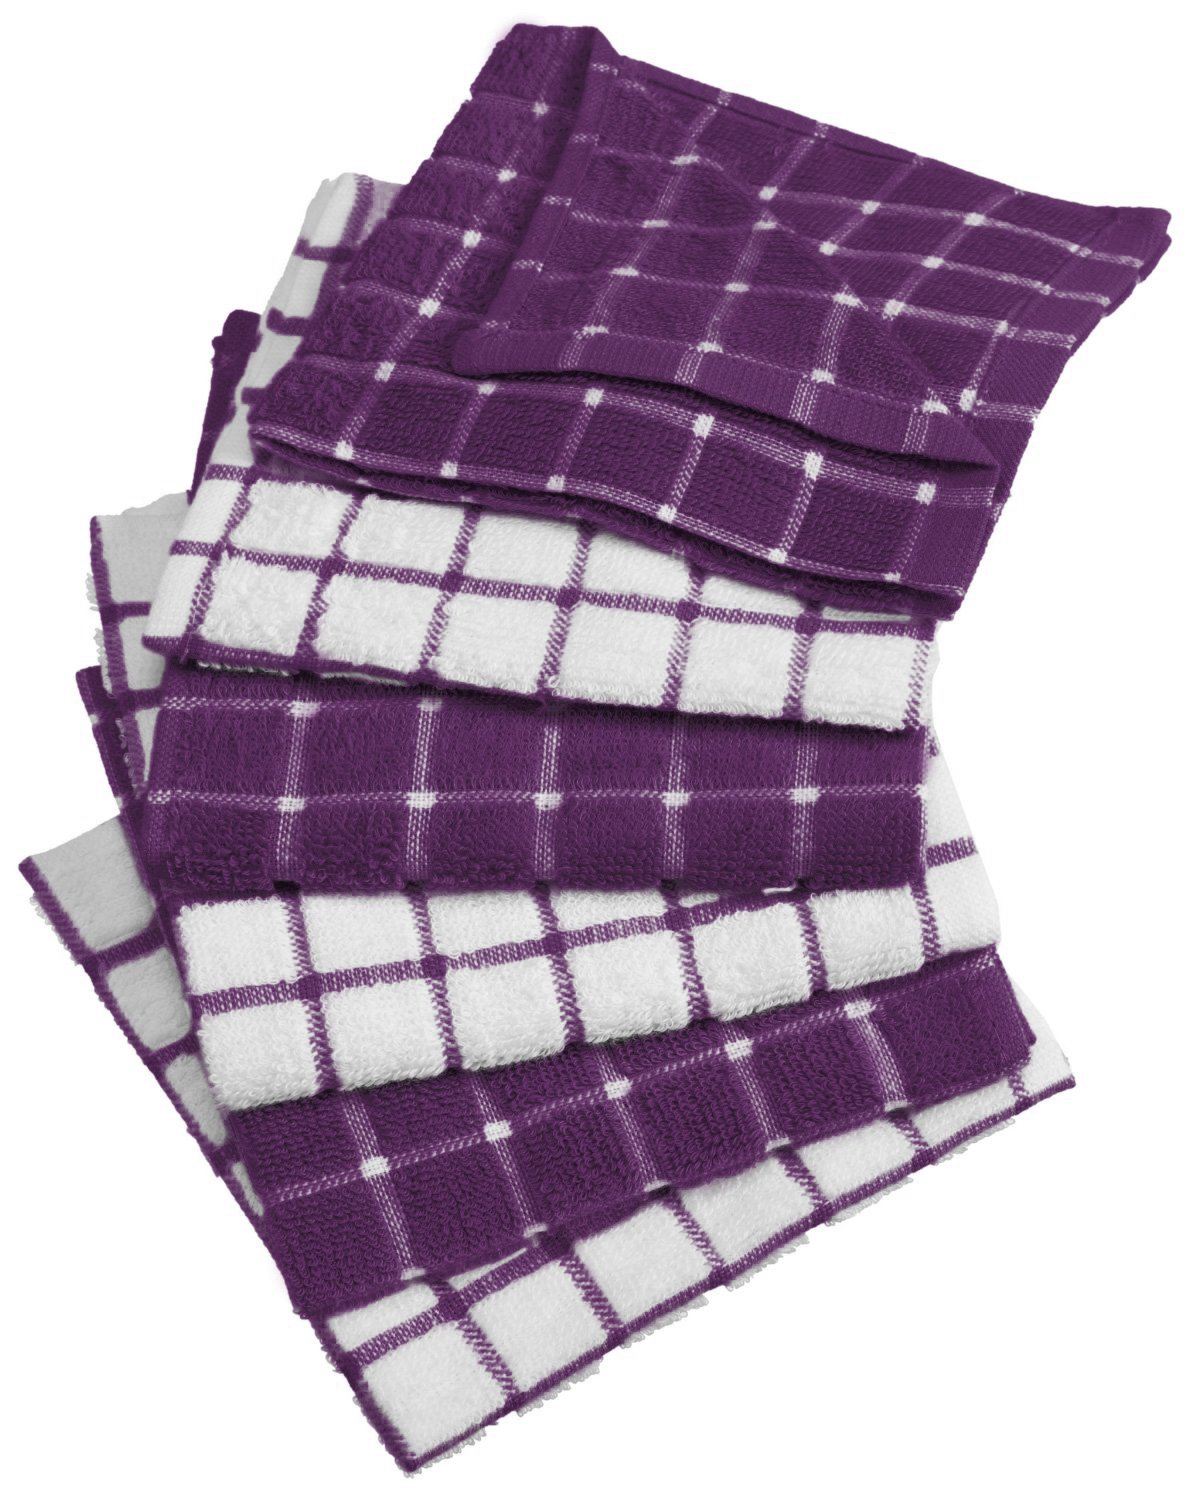 DII Cotton Terry Windowpane Dish Cloths, 12 x 12 Set of 6, Machine Washable Ultra Absorbent Kitchen Dishcloth-Eggplant